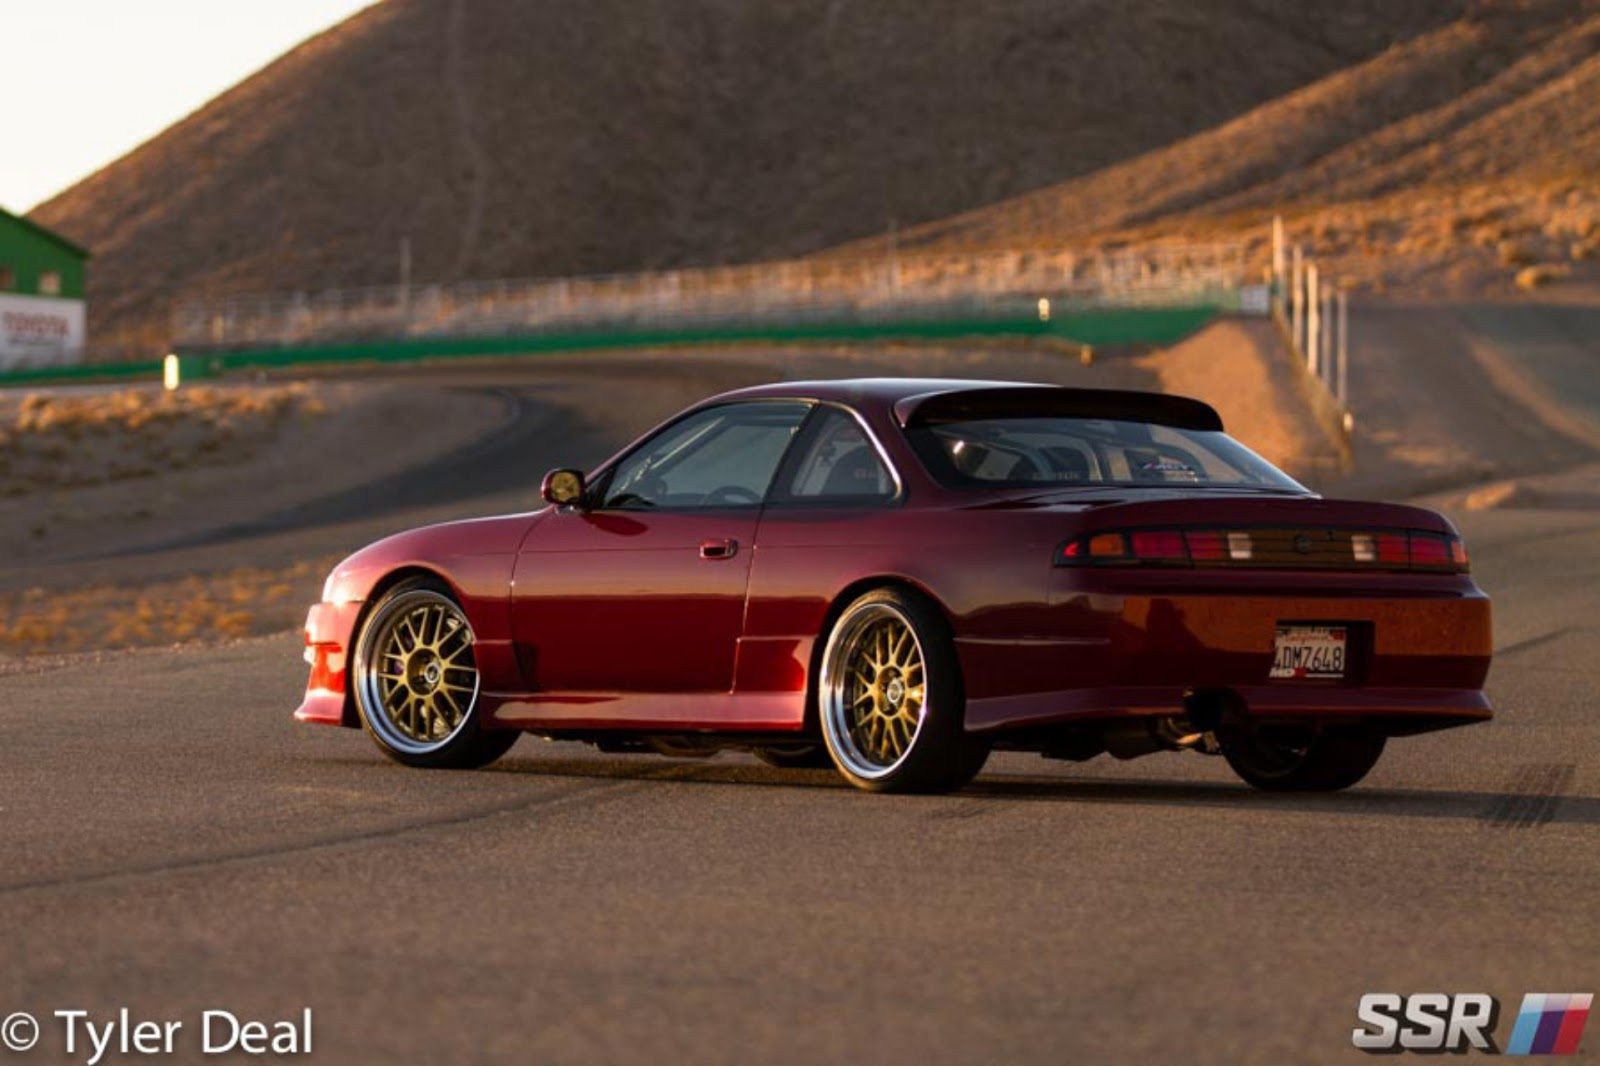 Nissan 240sx 1998 By Ssr All Tuning Cars New Zealand For Sale